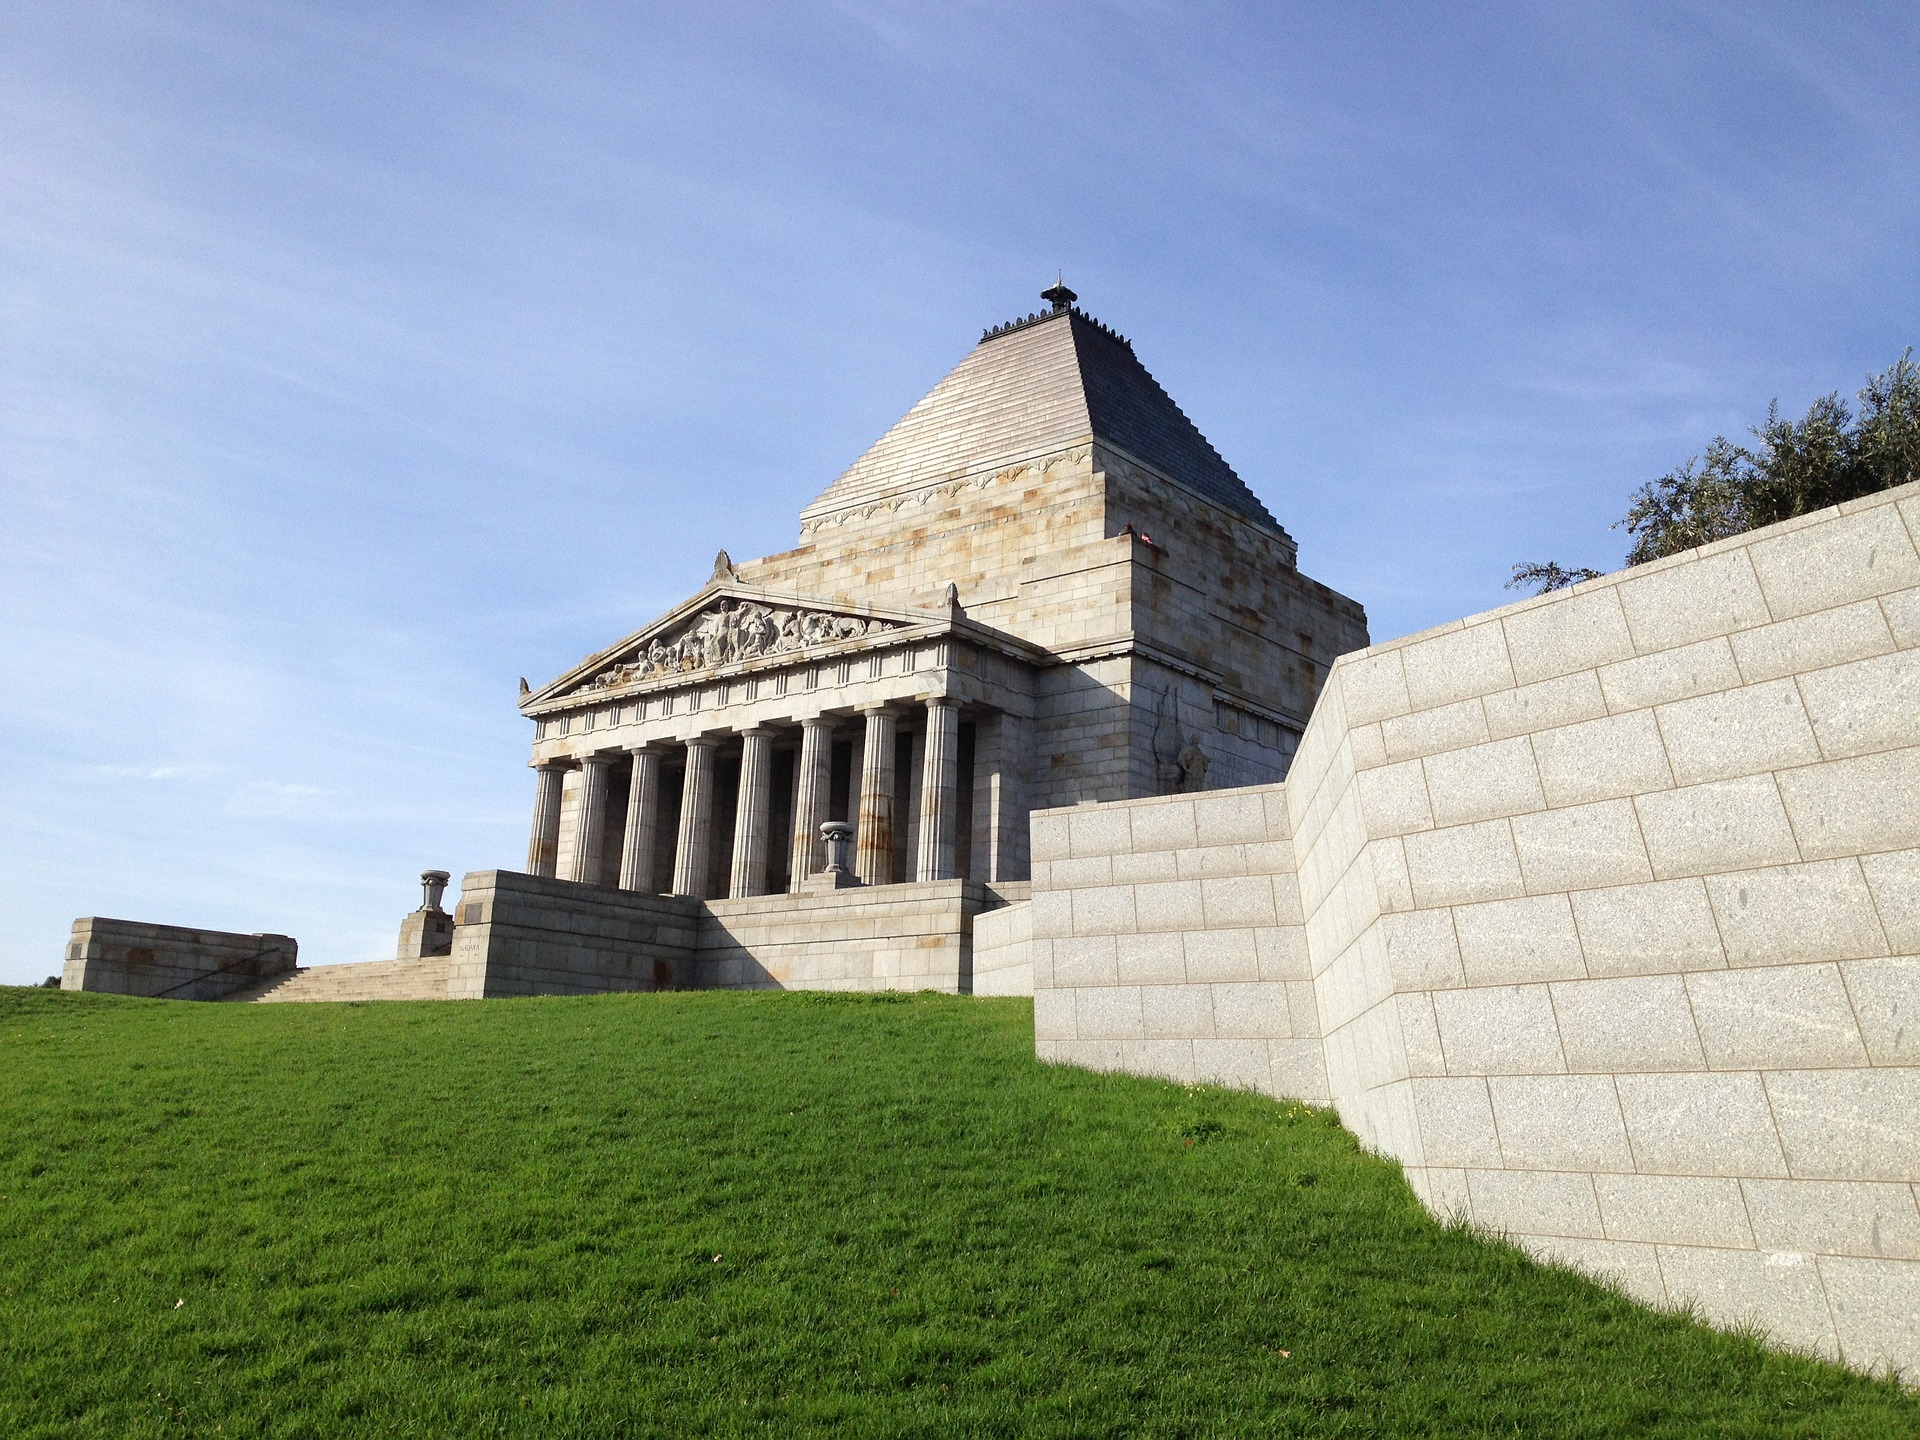 The Shrine of Remembrance War memorial in Melbourne, Victoria, Australia